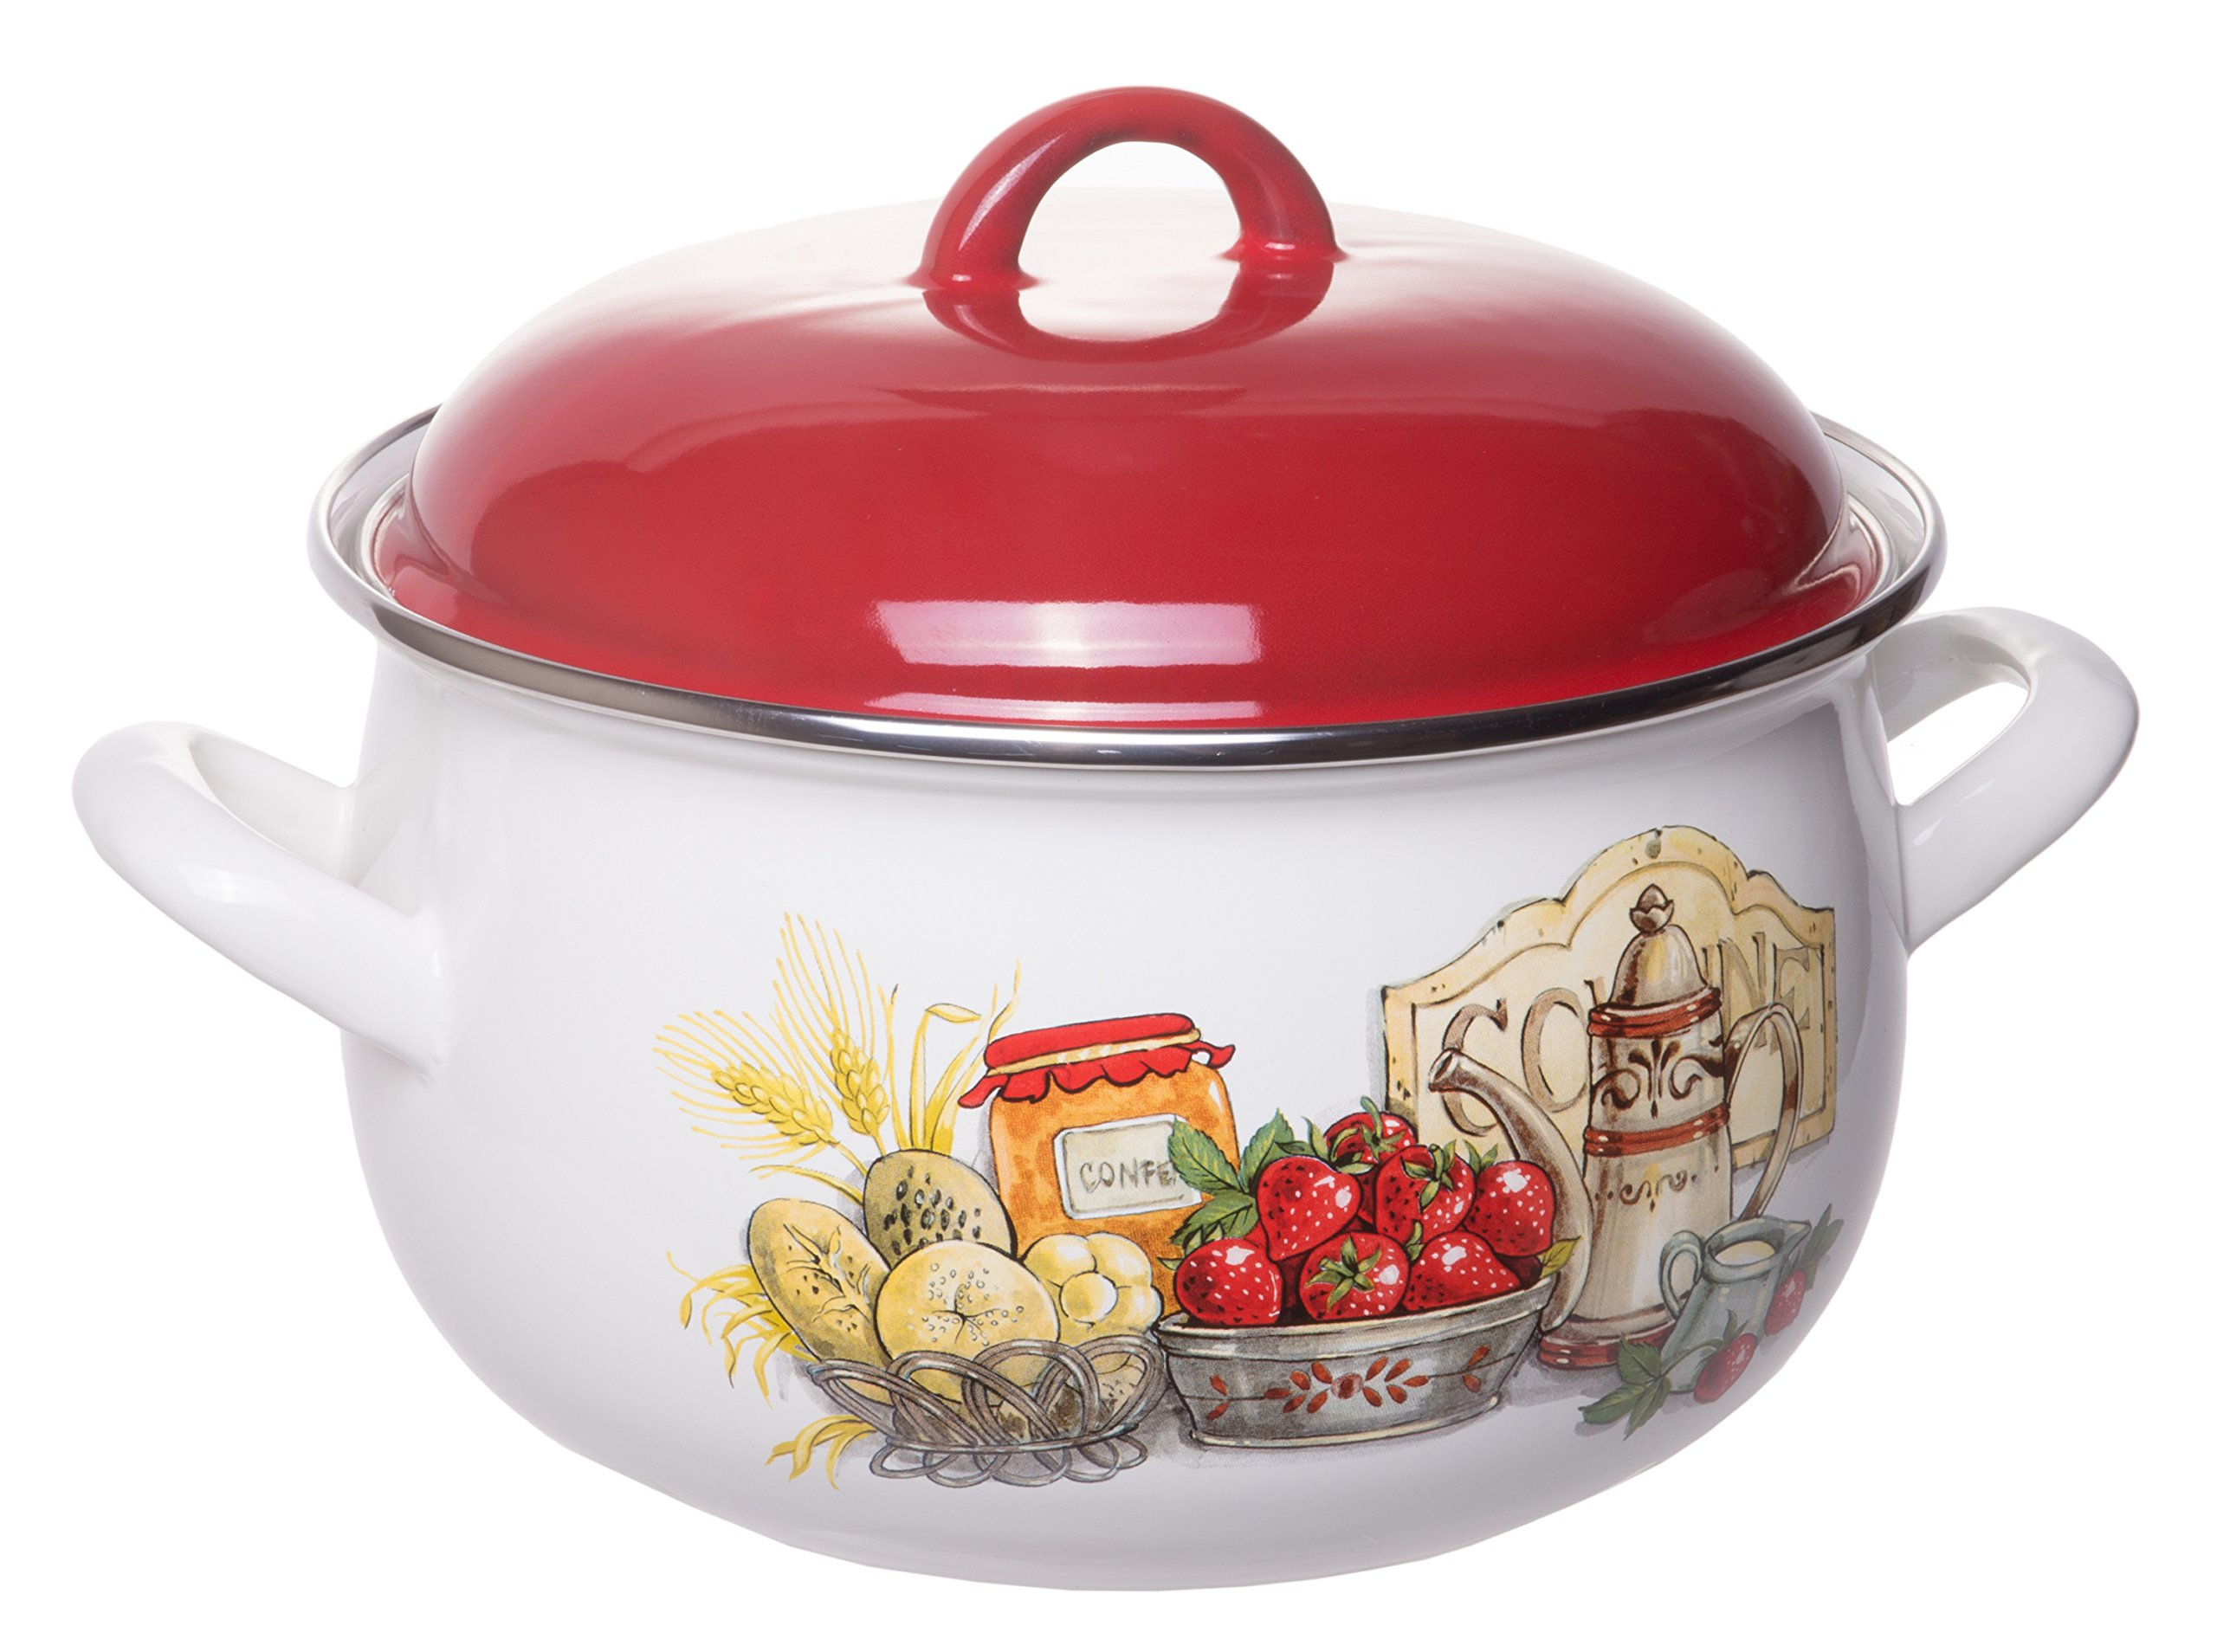 Enamel On Steel Round Covered Stockpot, Pasta Stock Stew Soup Casserole Dish with Red Lid, Up to 4 Quarts - 20 cm